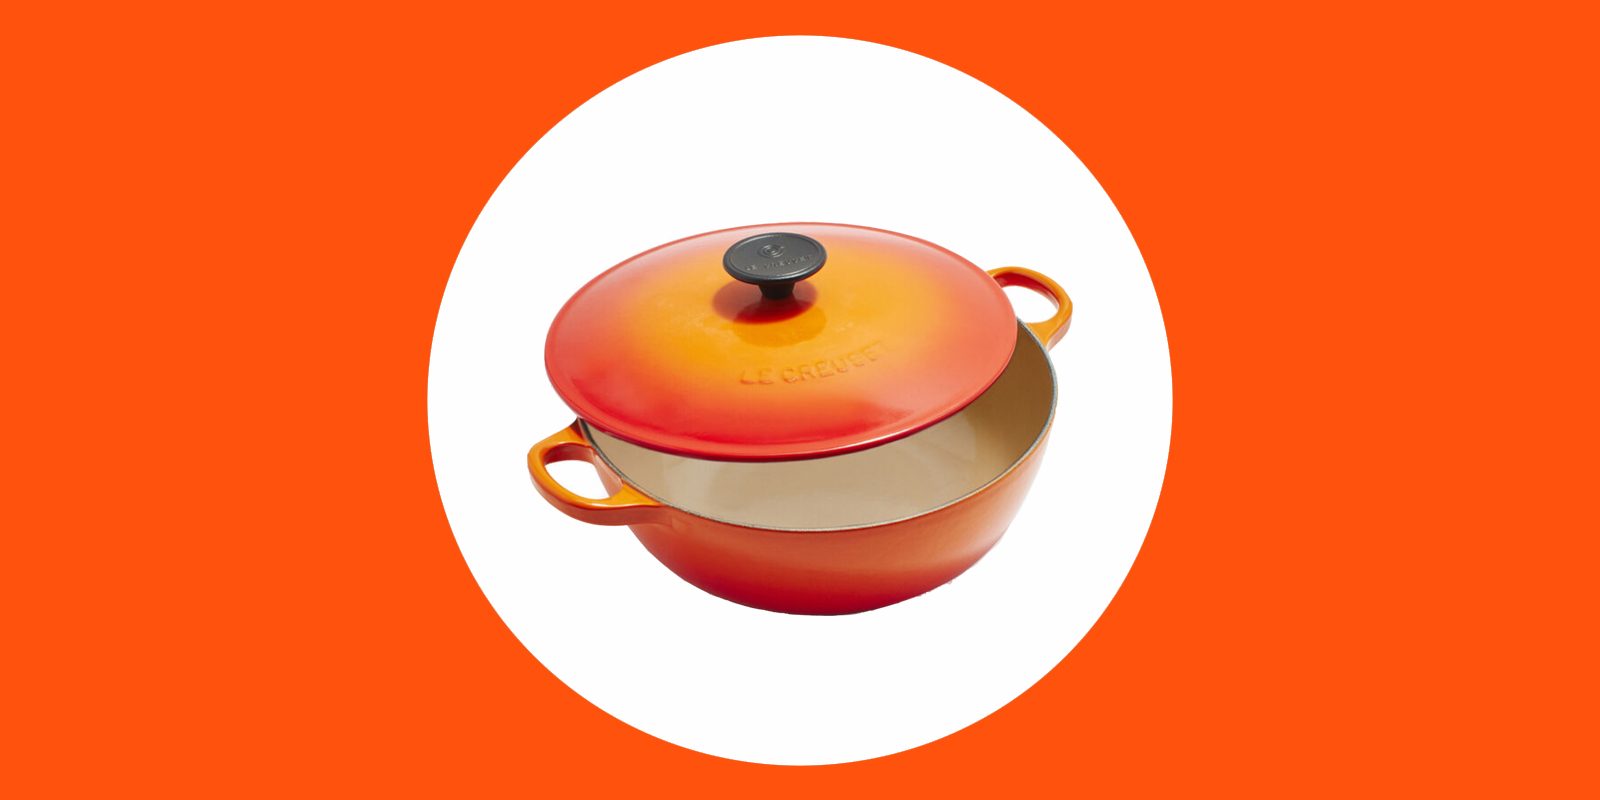 Le Creuset kitchenware is 50% off